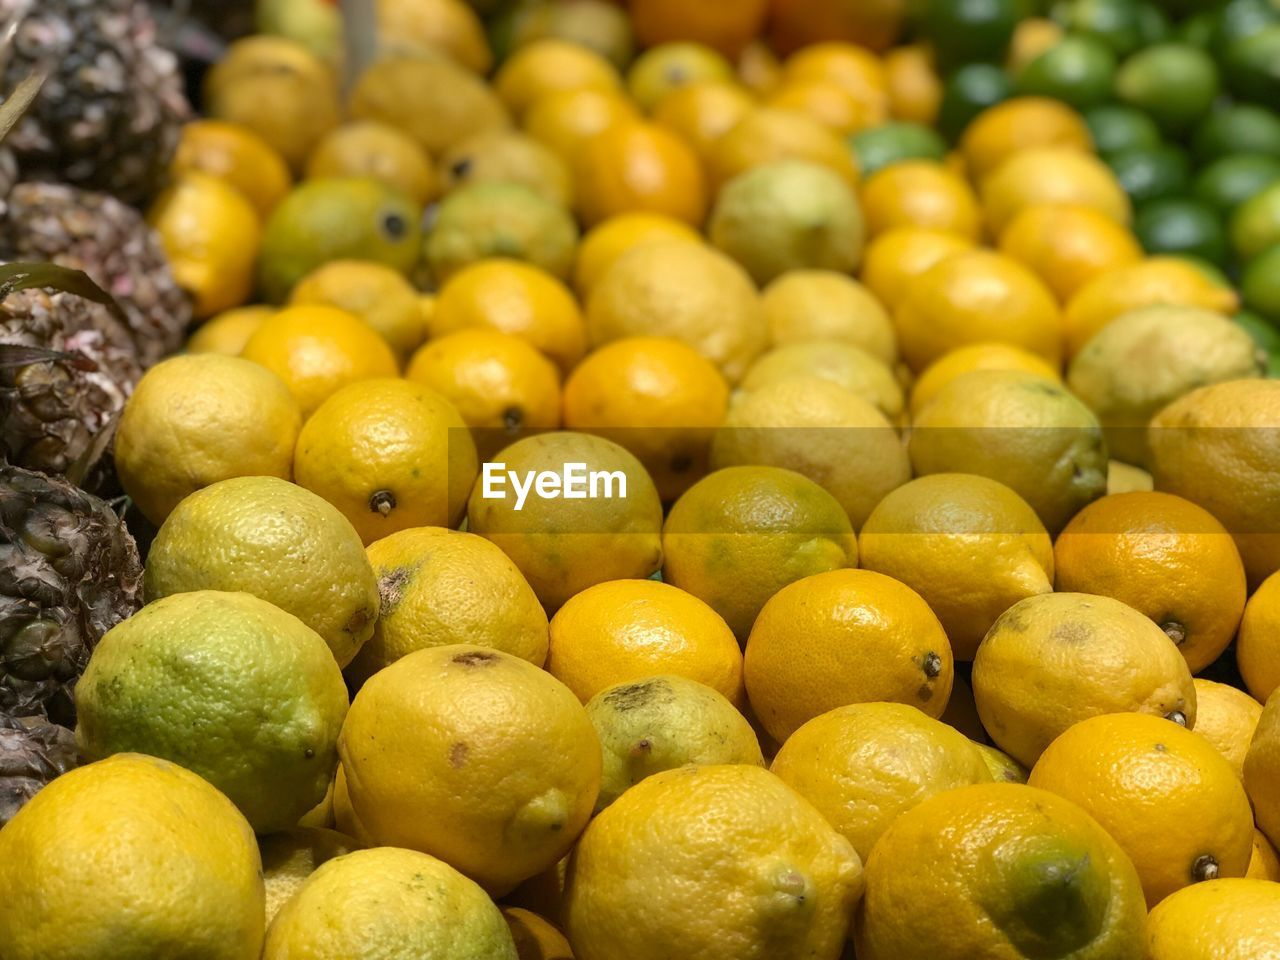 food and drink, food, healthy eating, fruit, freshness, wellbeing, for sale, market, abundance, yellow, retail, market stall, large group of objects, no people, close-up, still life, citrus fruit, choice, focus on foreground, small business, retail display, orange, ripe